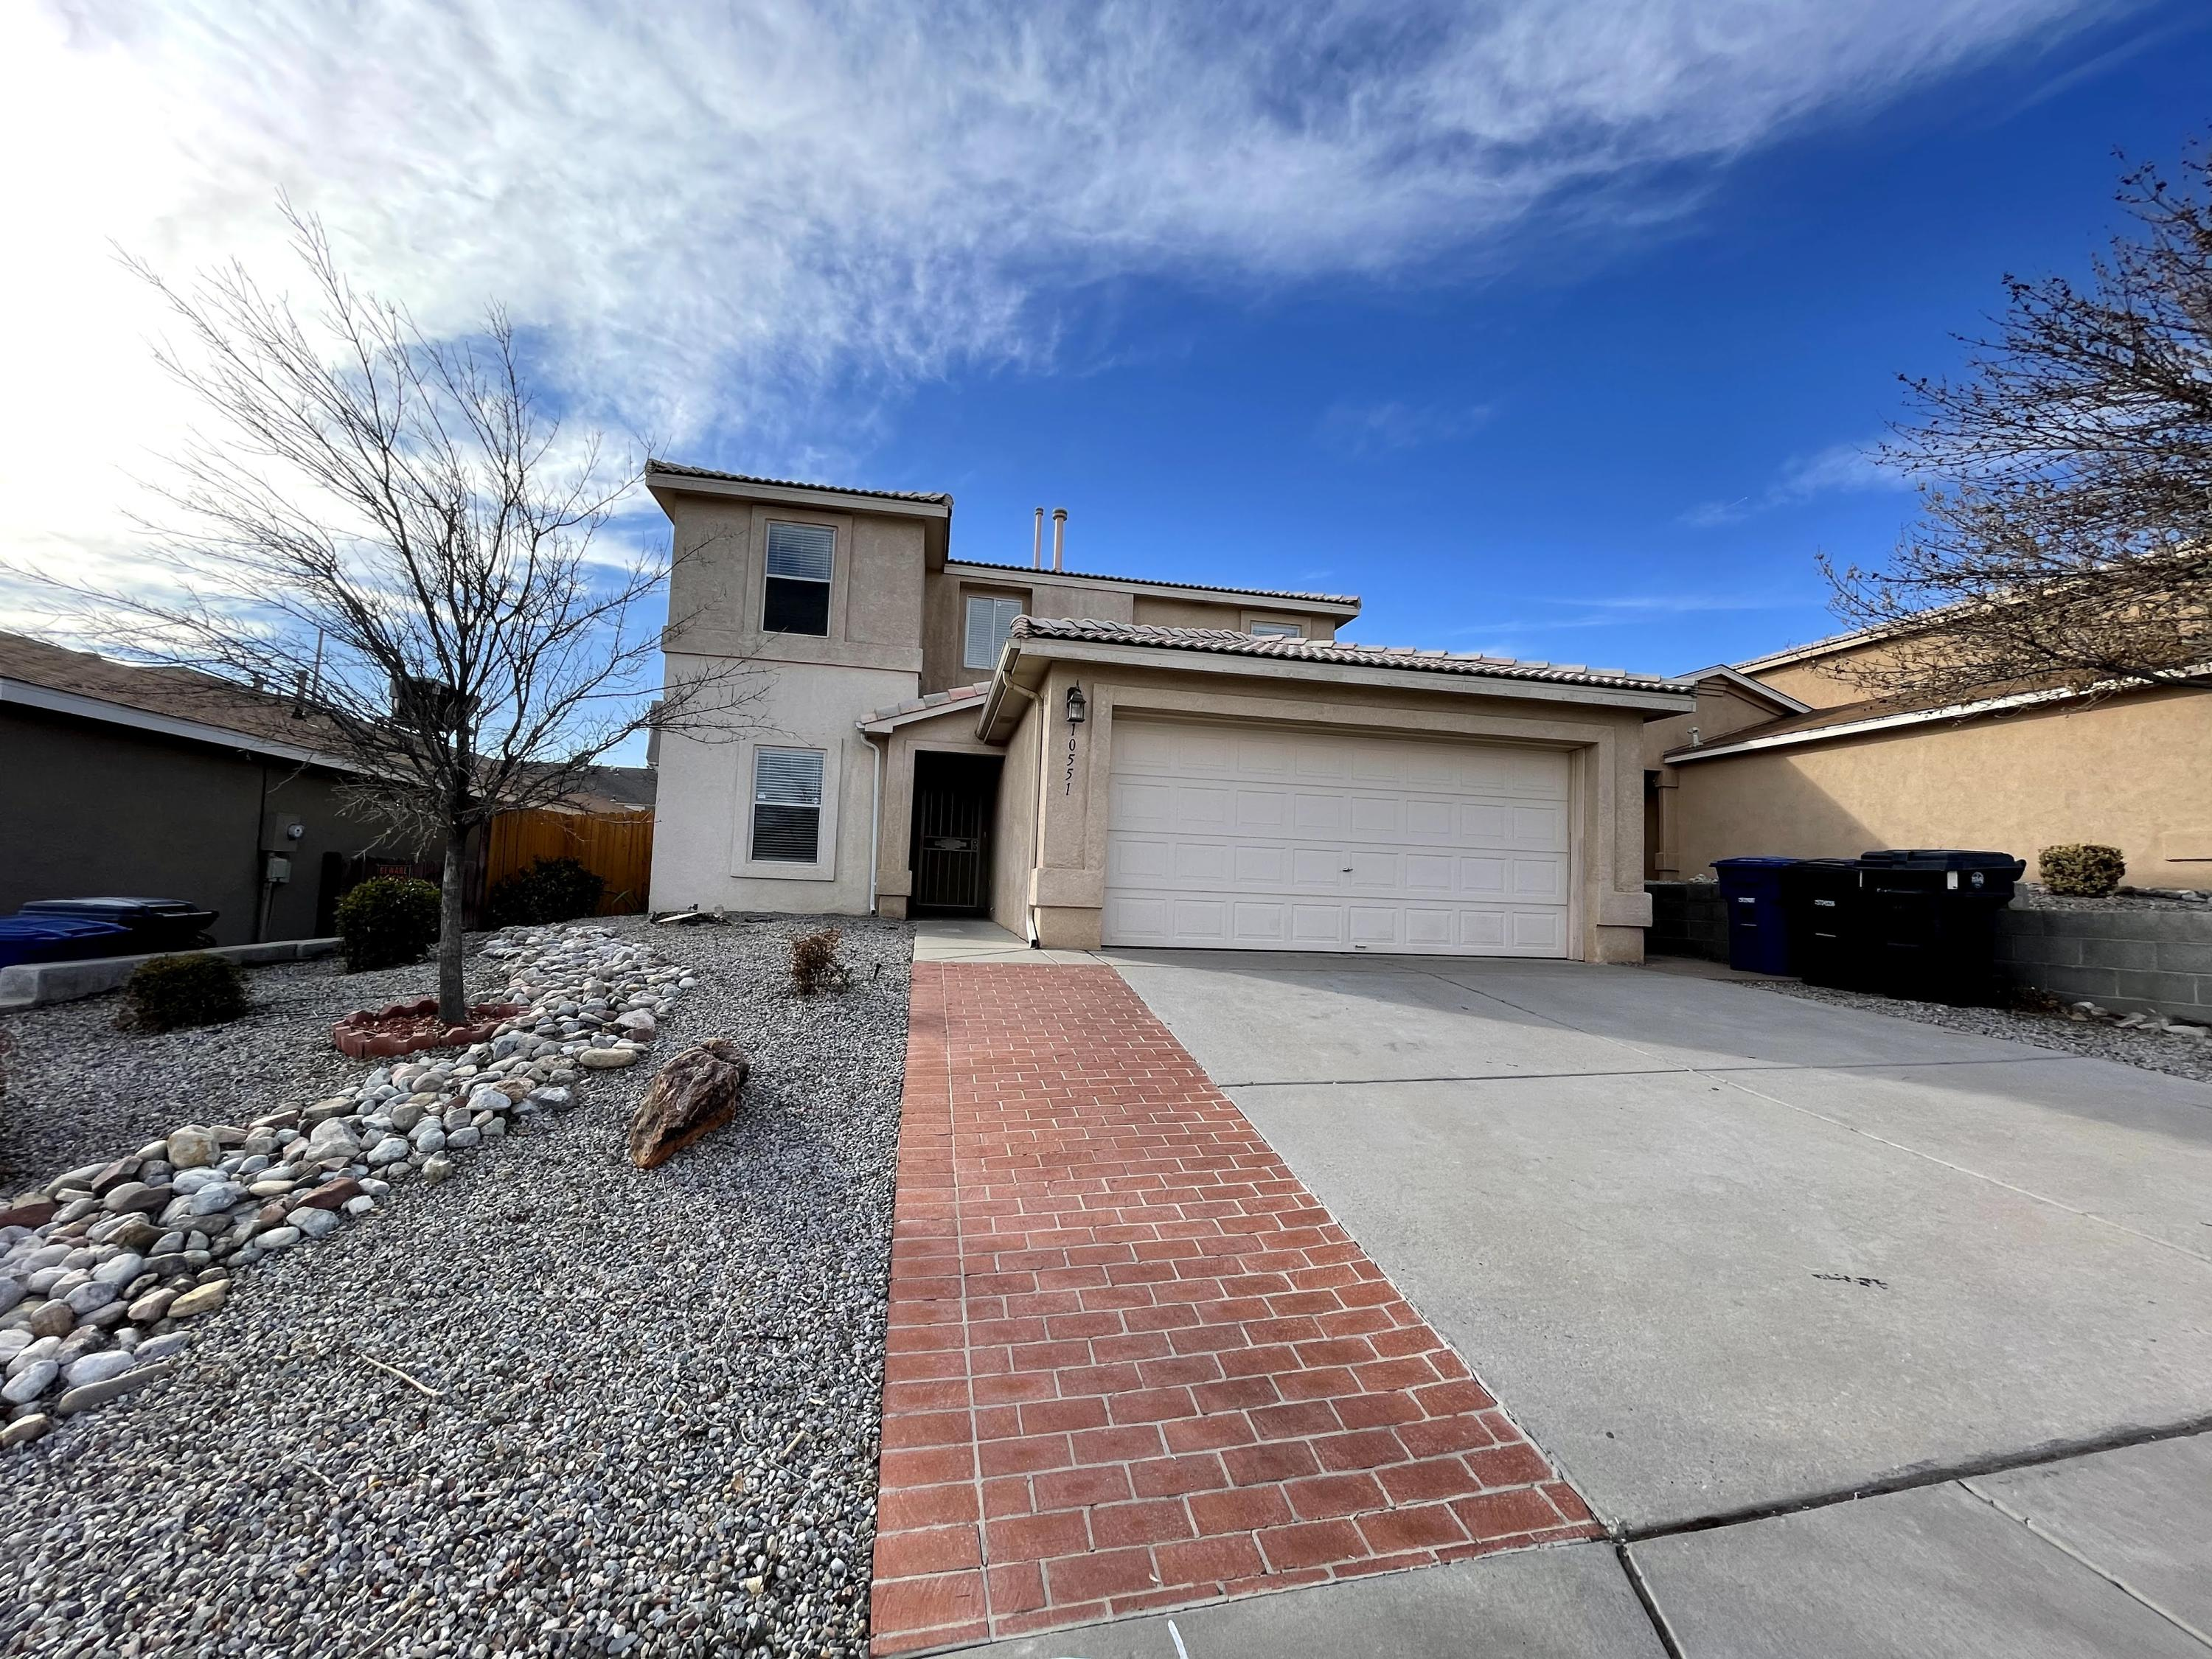 This gorgeous home is ready for new owners! Located in the Tuscany Ridge Subdivision of NW Albuquerque, this home has 4 bedrooms and 3 full bathrooms. One bedroom is conveniently located downstairs with a full bathroom right next to it! This home has a huge walk in pantry for extra storage and is known as the ''Costco Pantry''. In the owner's suite you will find a relaxing garden tub and large walk in closet. The large backyard includes a dog run and covered patio. All new carpets! Don't miss out on this amazing home!